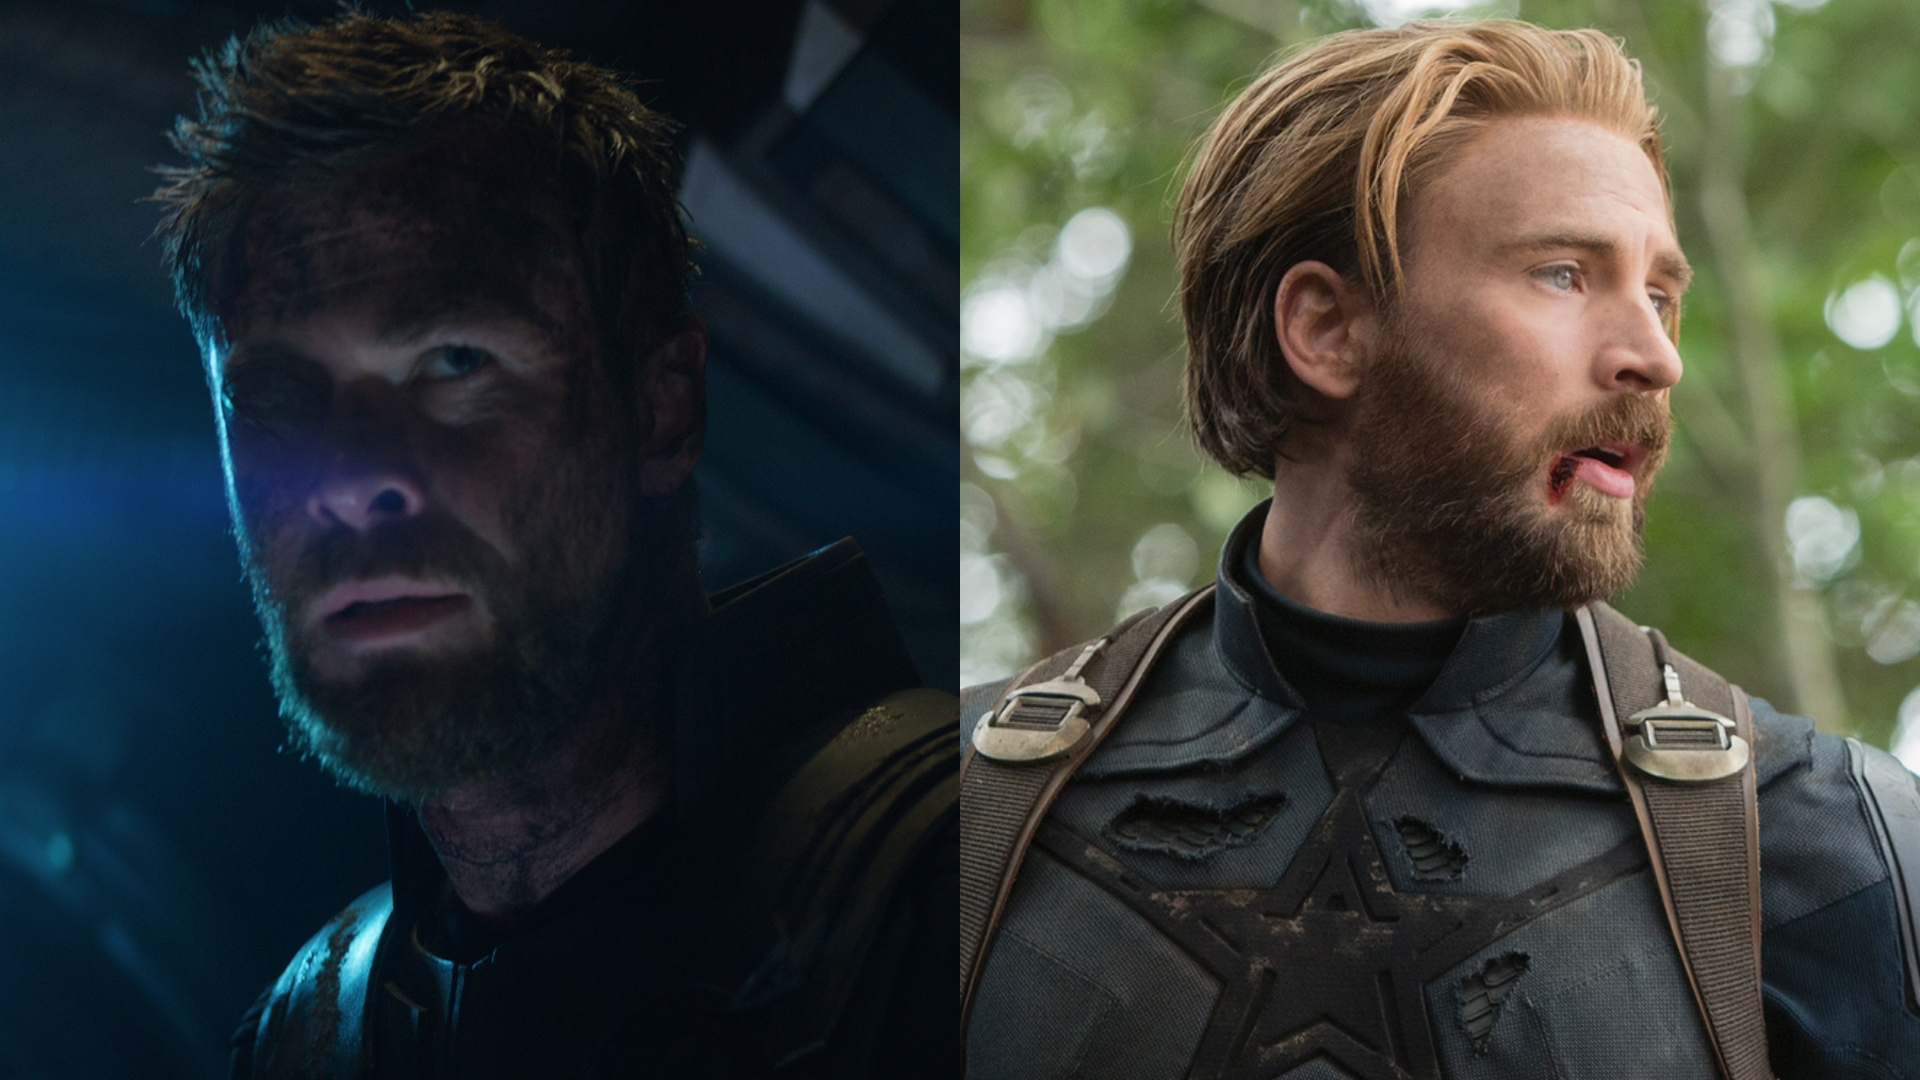 thor and captain america have more in common than their beards in